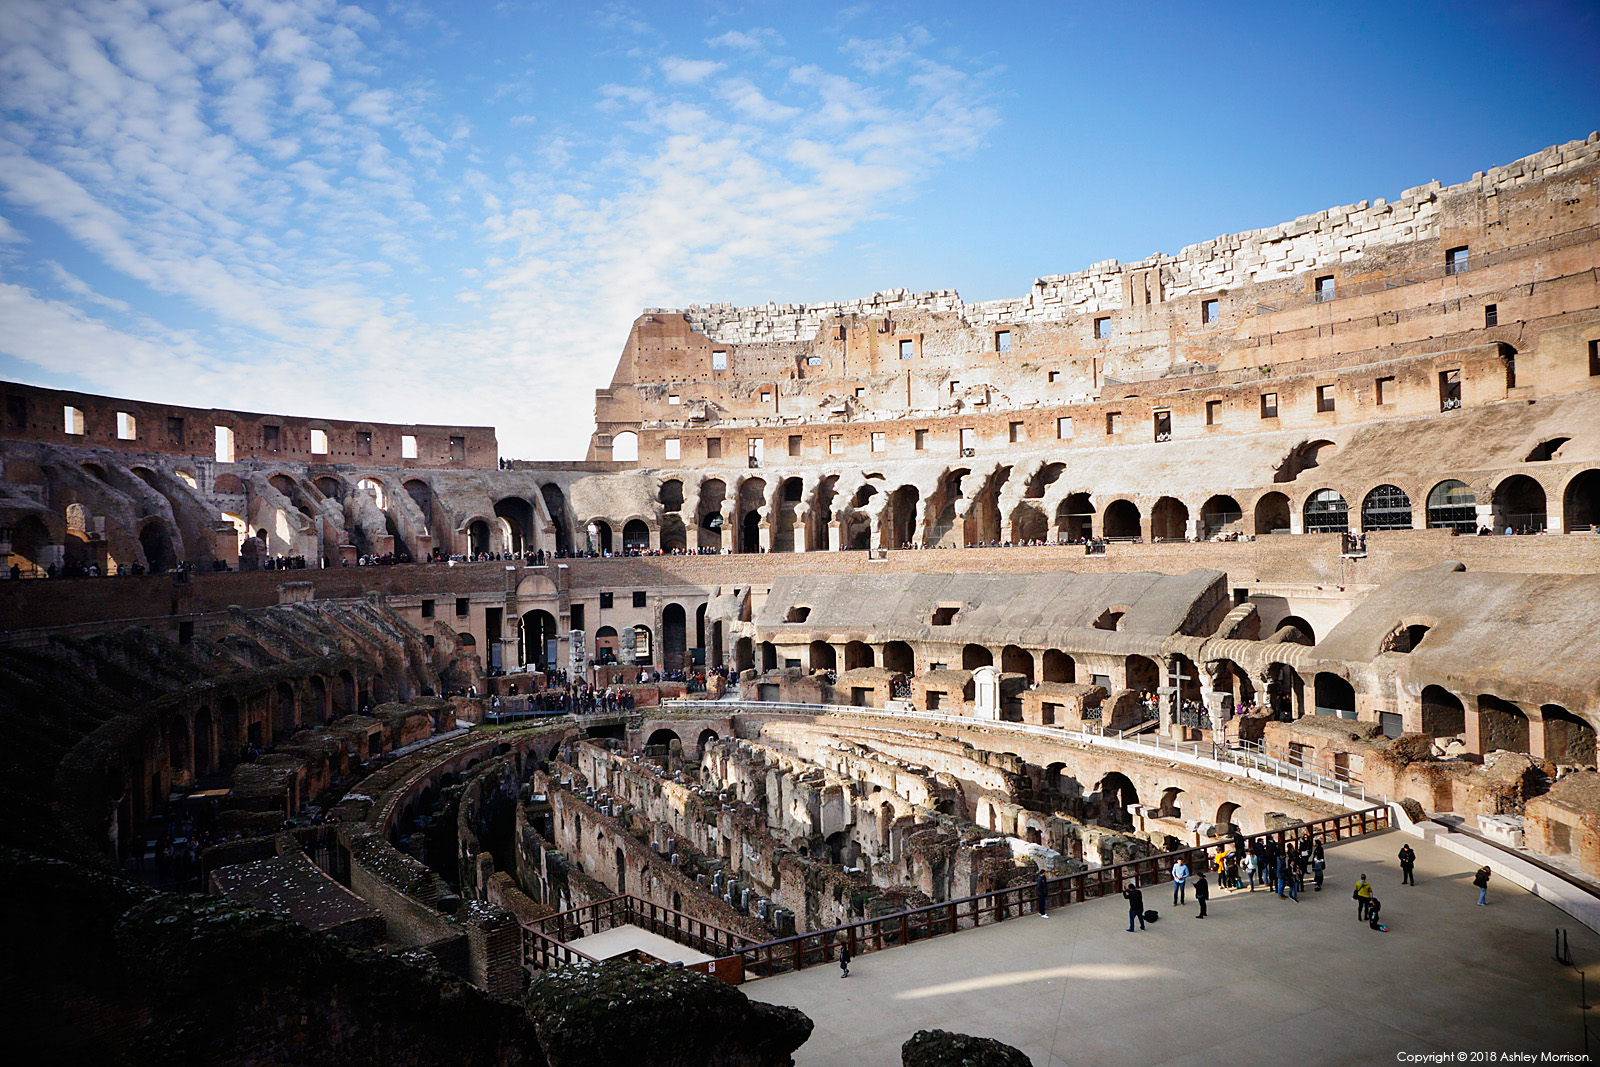 The Colosseum or Coliseum, also known as the Flavian Amphitheatre.